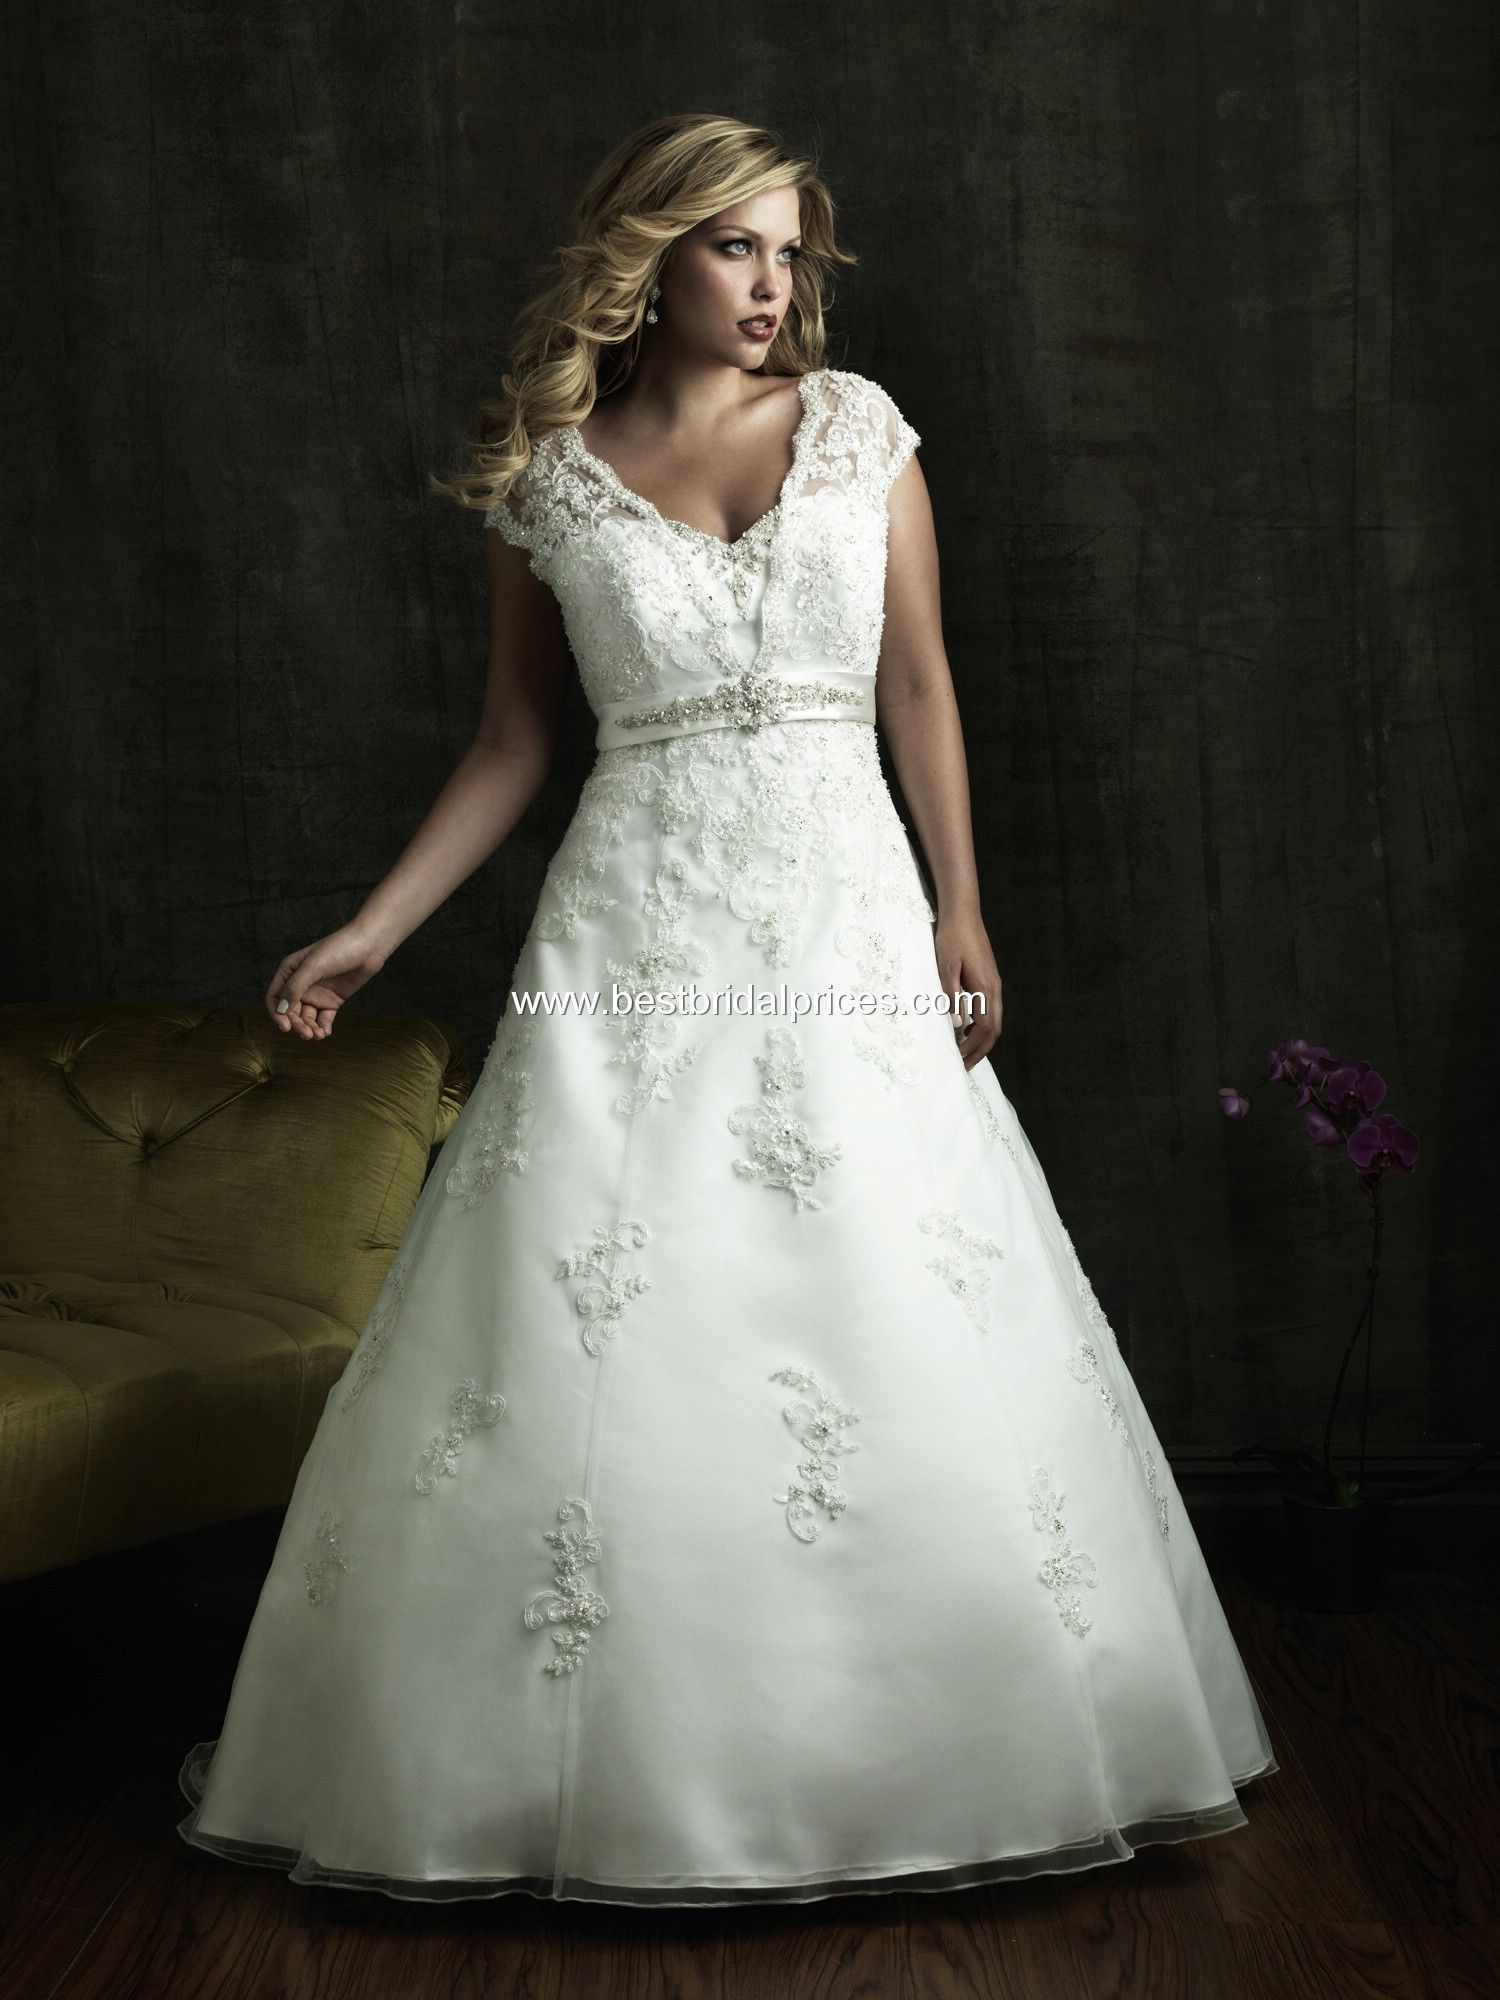 17 Best images about wedding dresses on Pinterest | Plus size ...